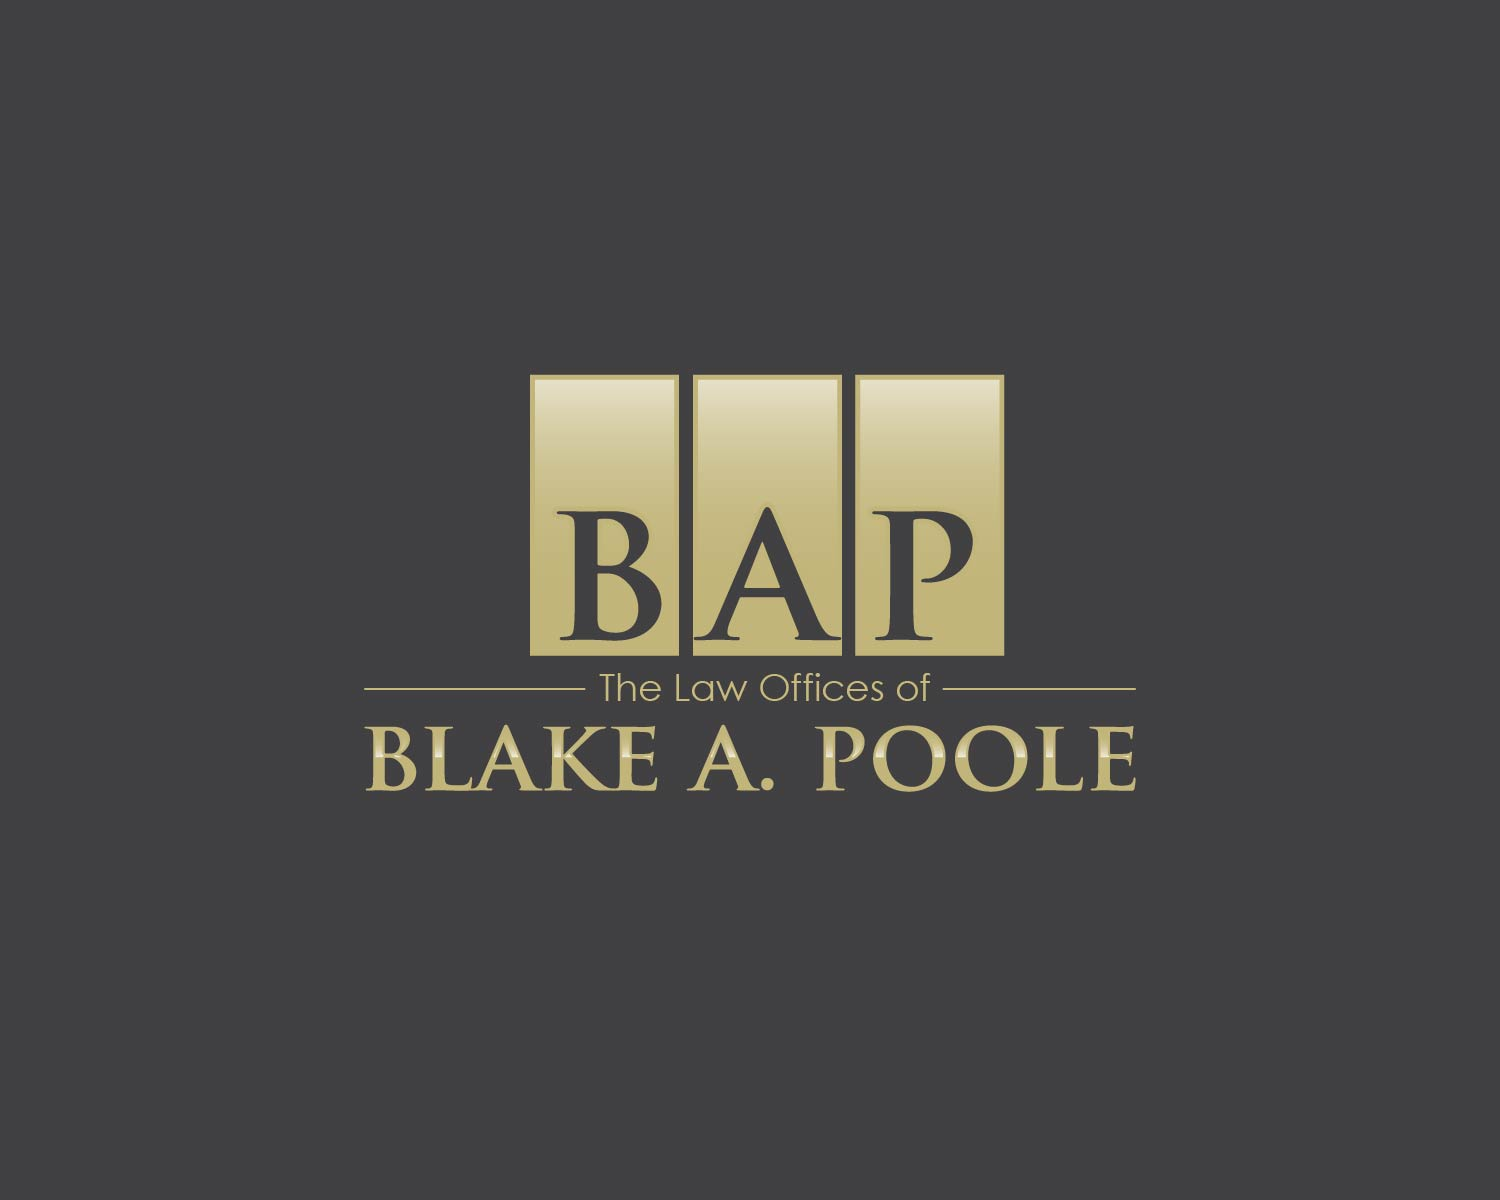 The Law Offices of Blake A. Poole